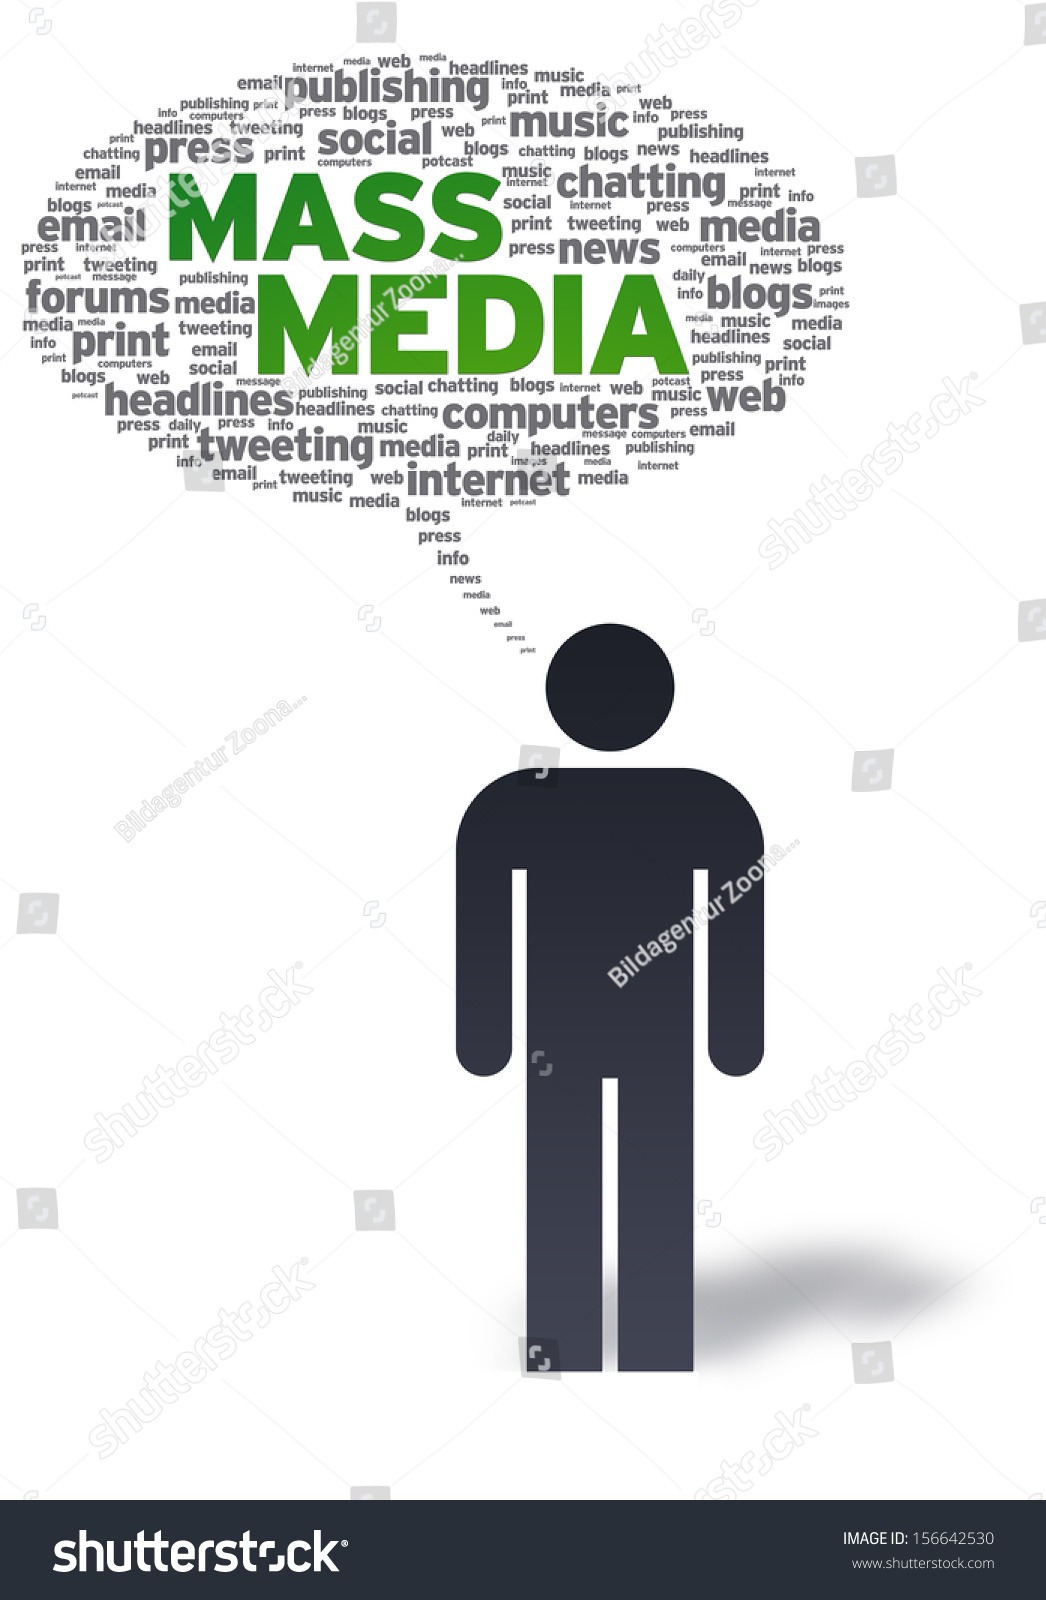 Mass Media Stock Illustration 156642530 - Shutterstock